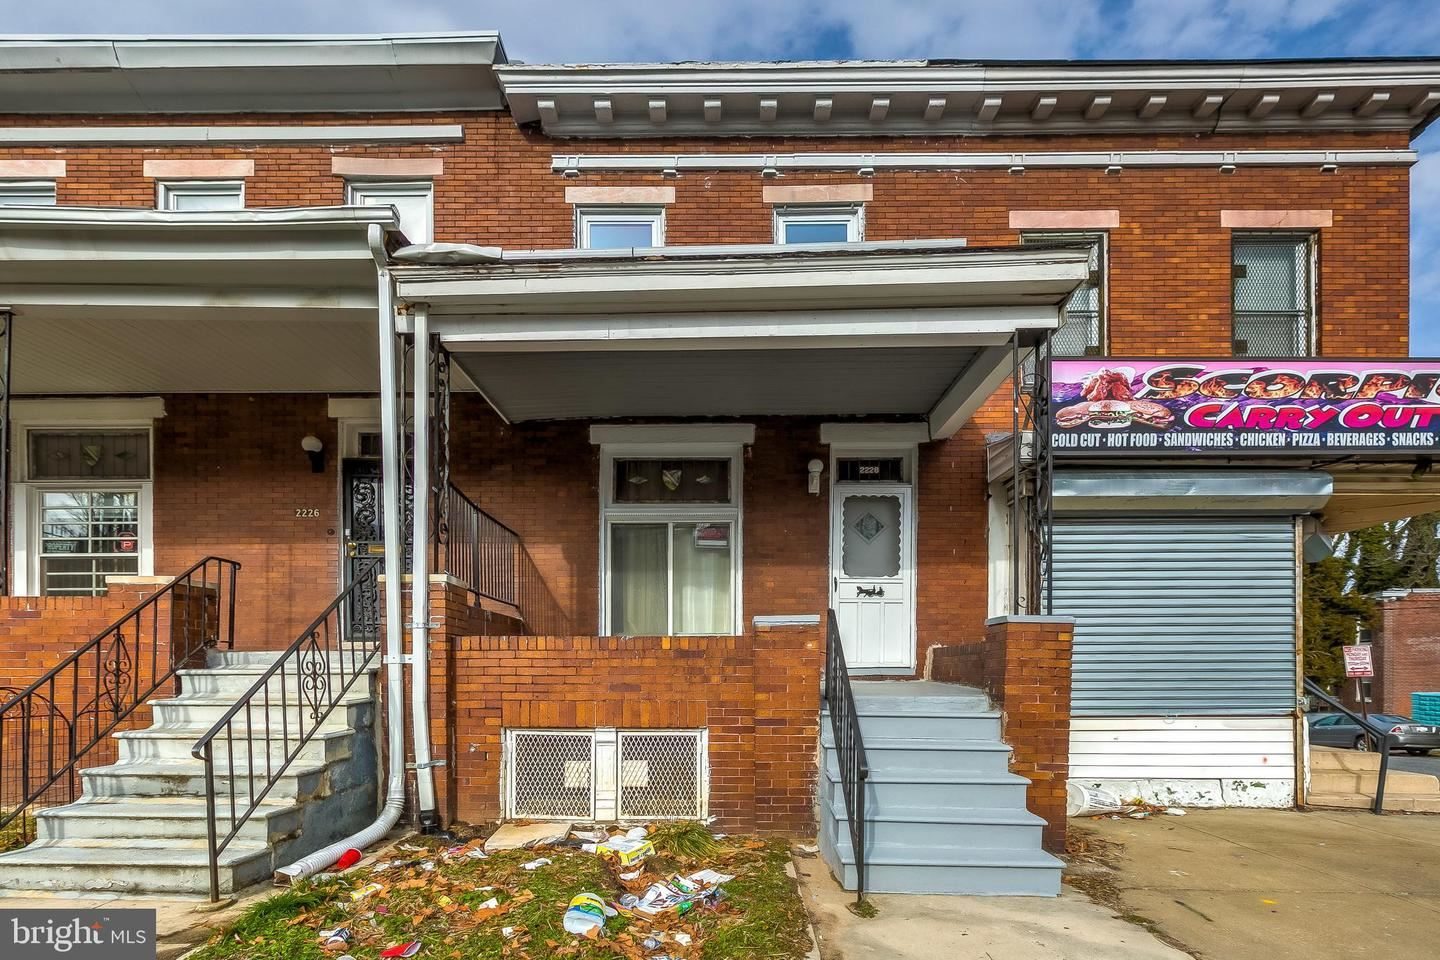 2228 AIKEN ST, Baltimore, MD 21218 - MLS#: MDBA538226